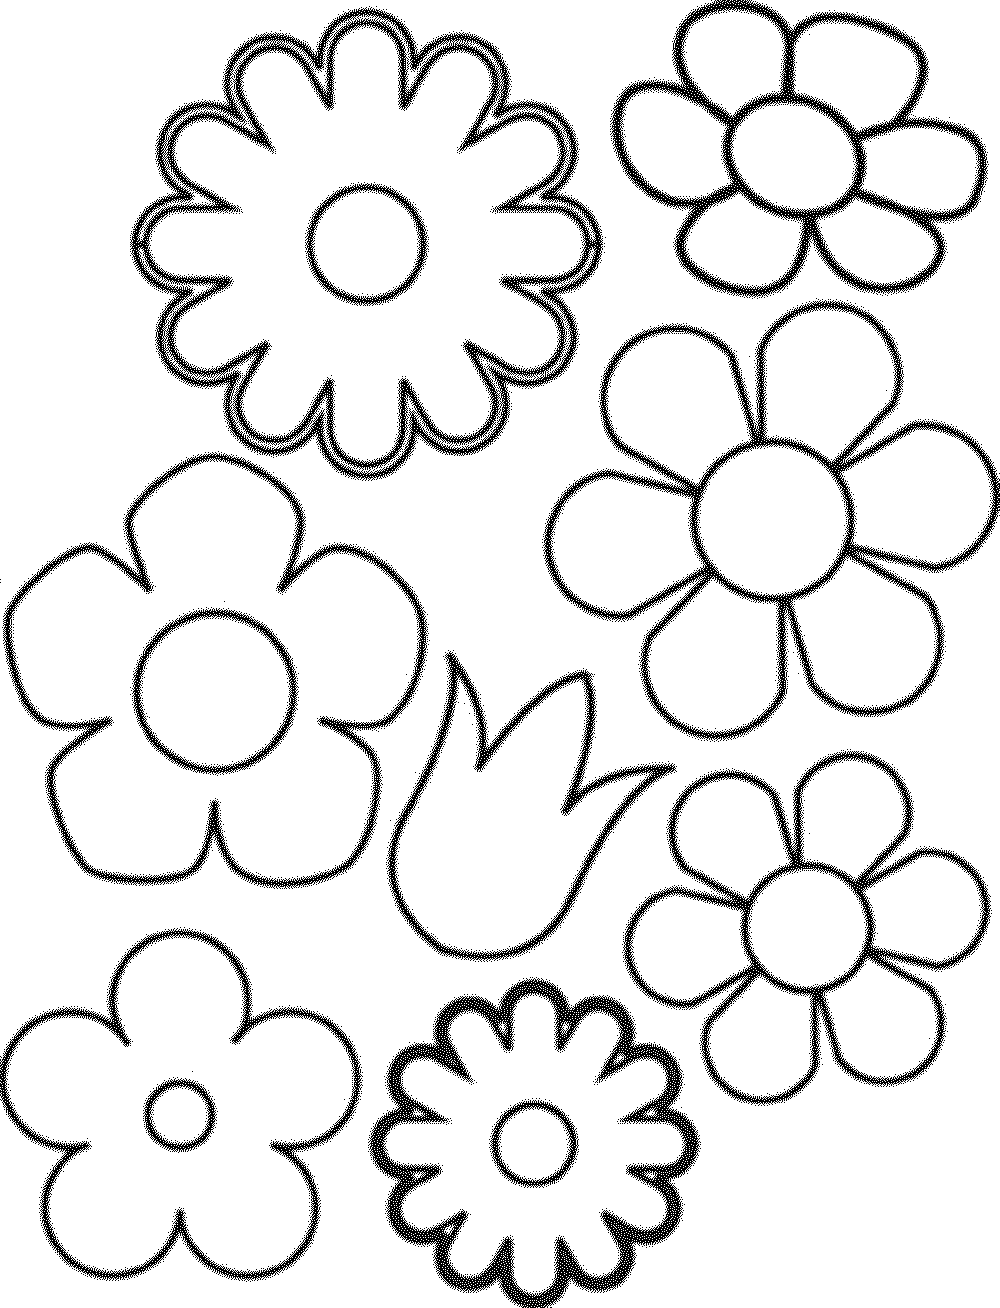 Flower Mandala Coloring Pages - Printable Kids Colouring